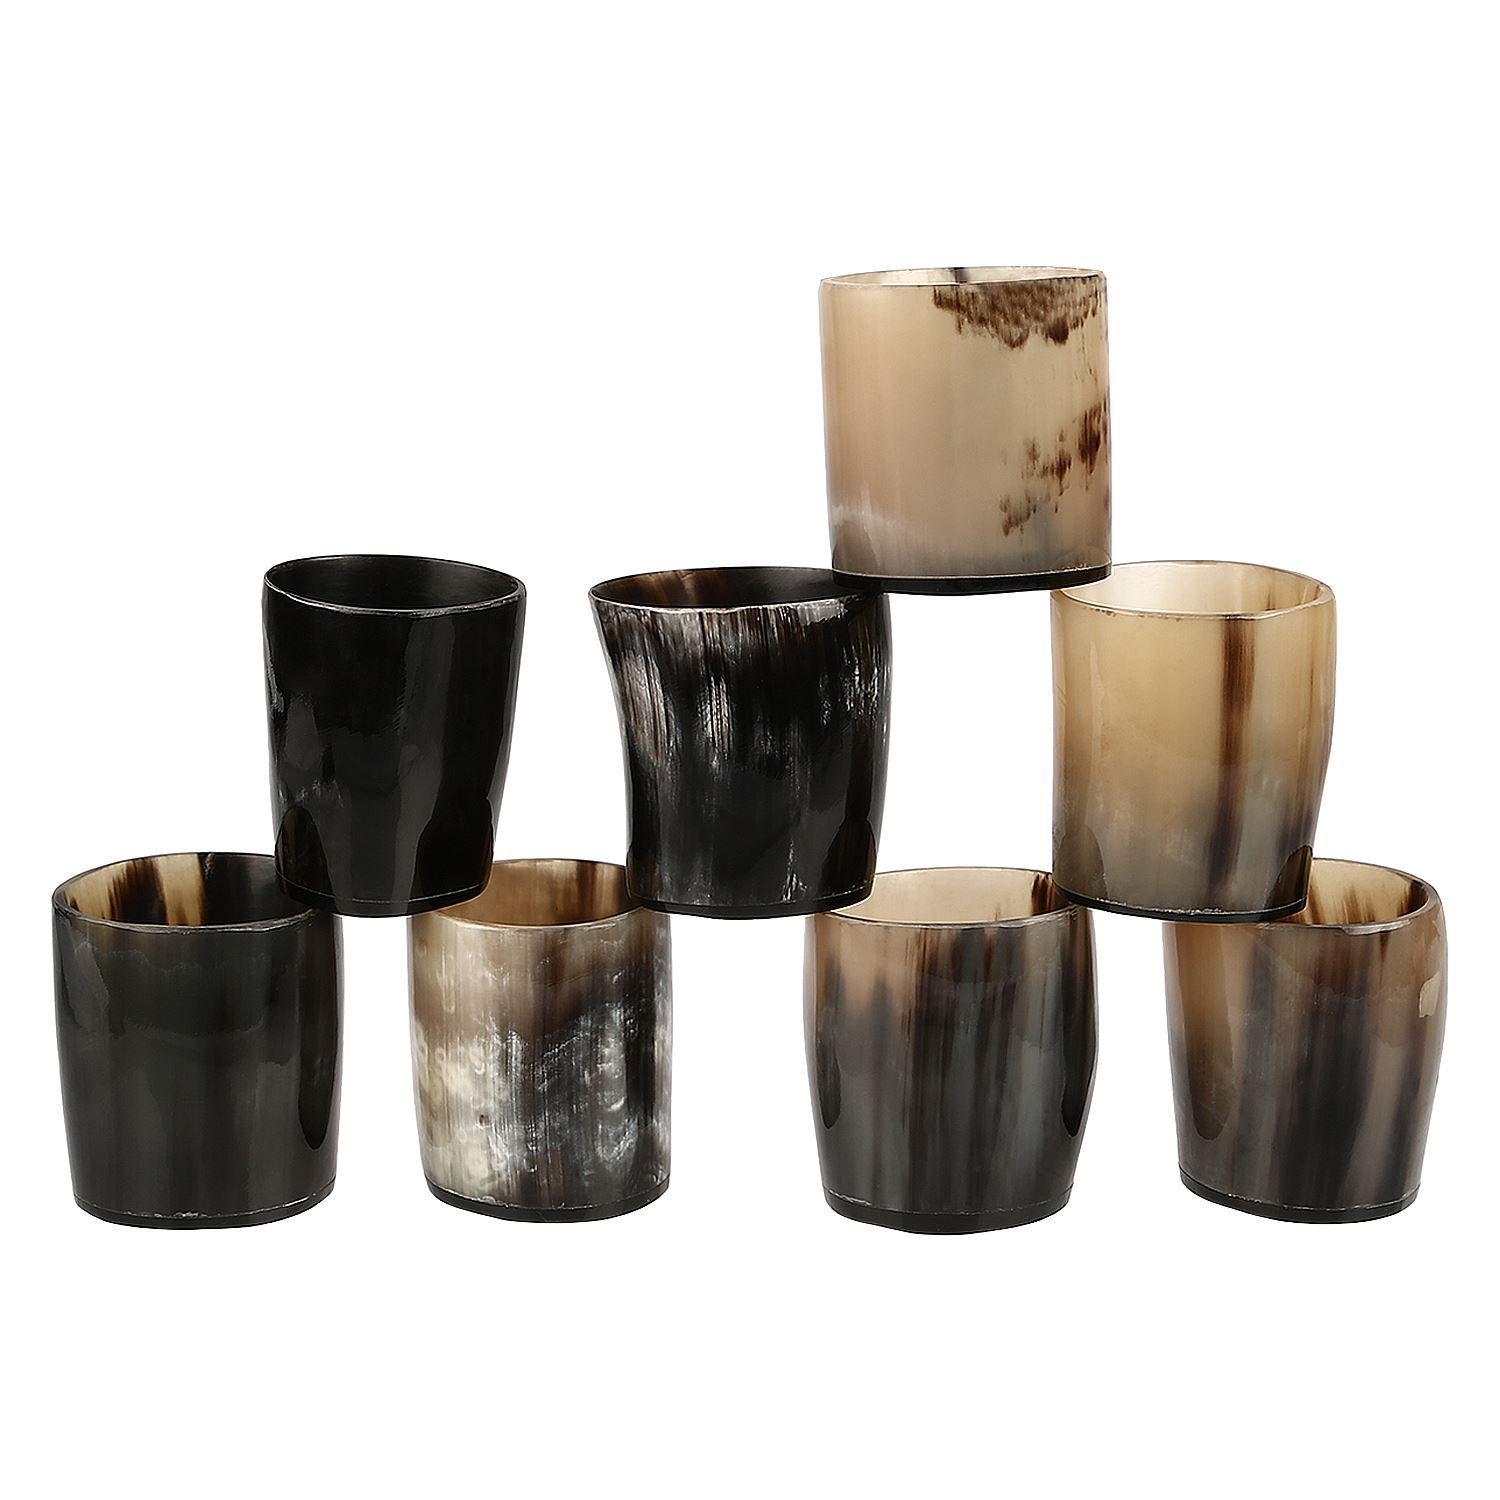 Antique Whiskey Shot Glass Cup Whisky Dram Real Horn Glass Goblet Vintage Set Glasses from Handicrafts Home USA